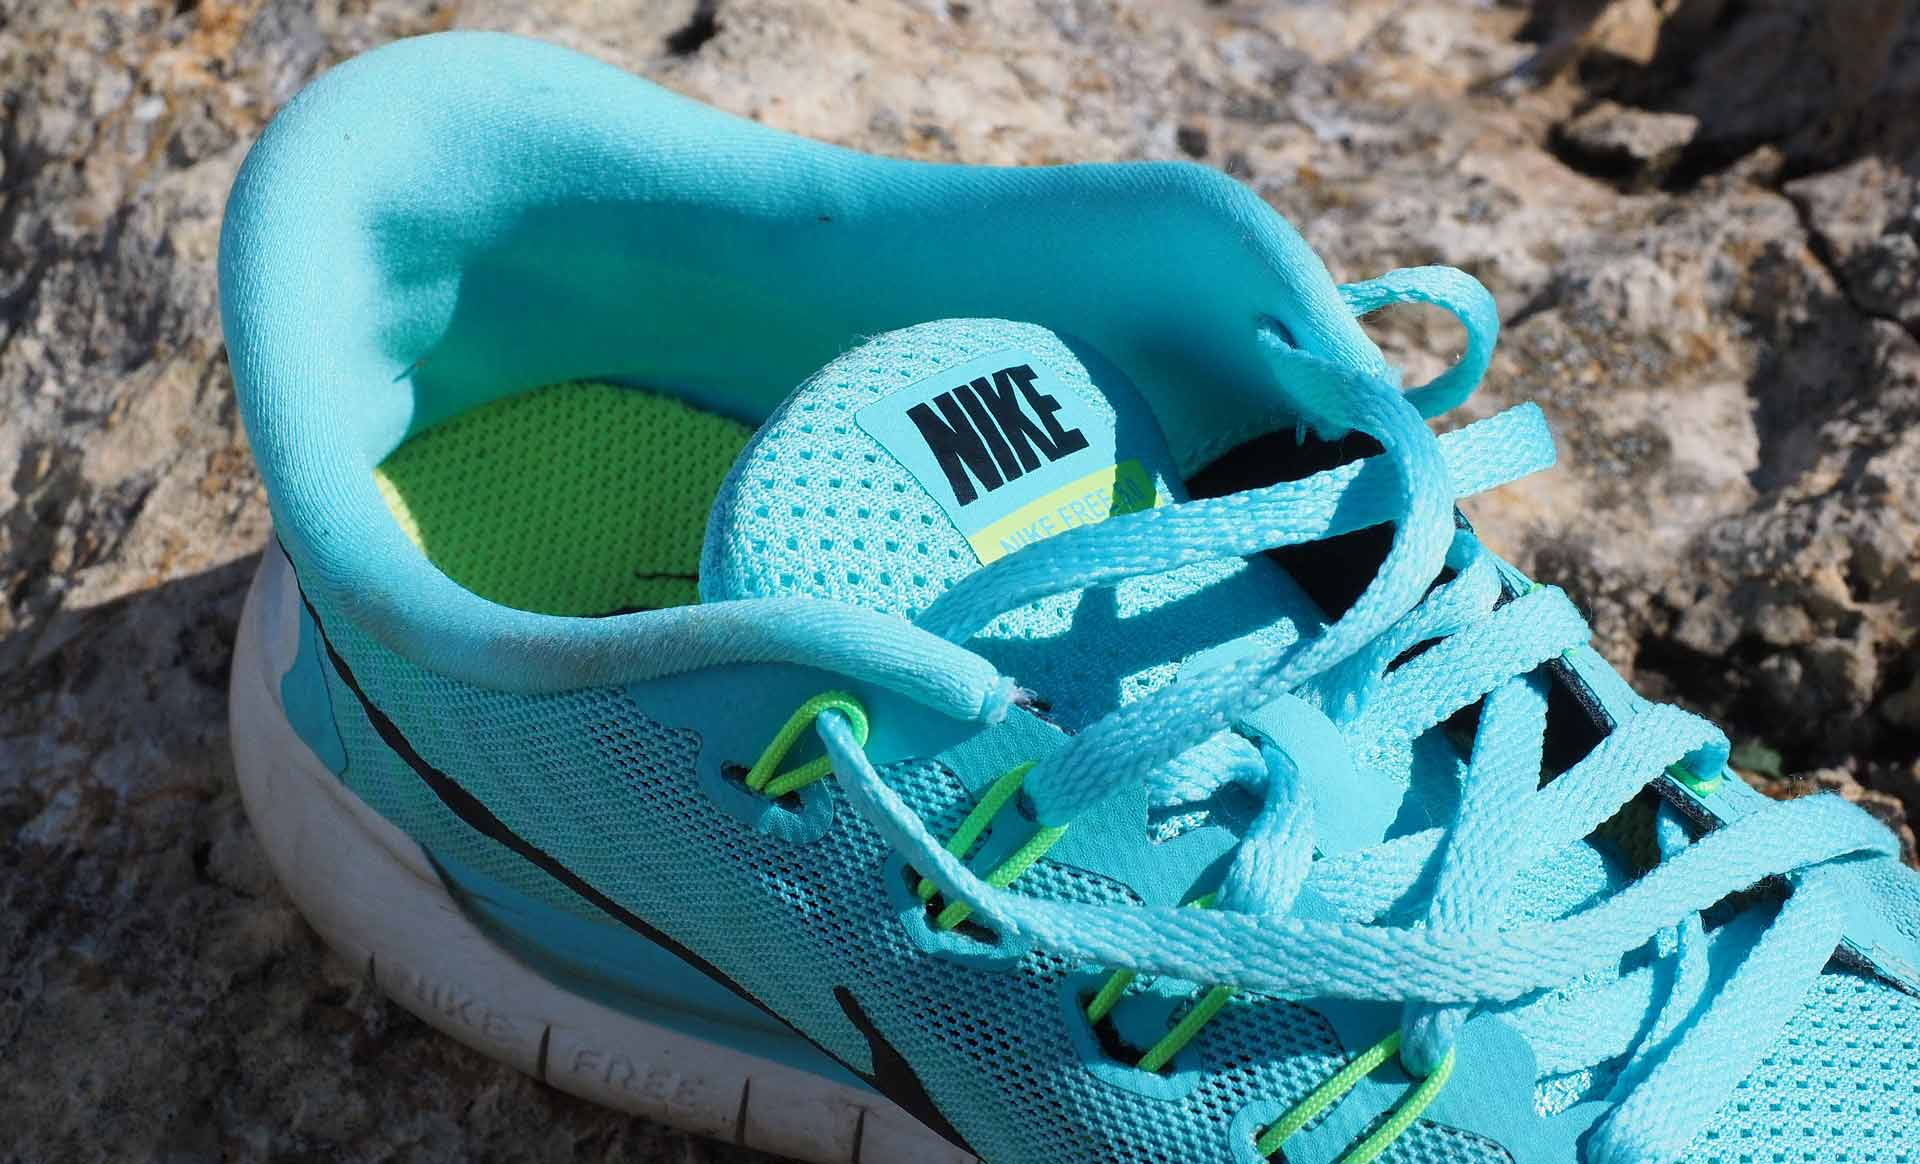 How to clean Nike shoes with mesh